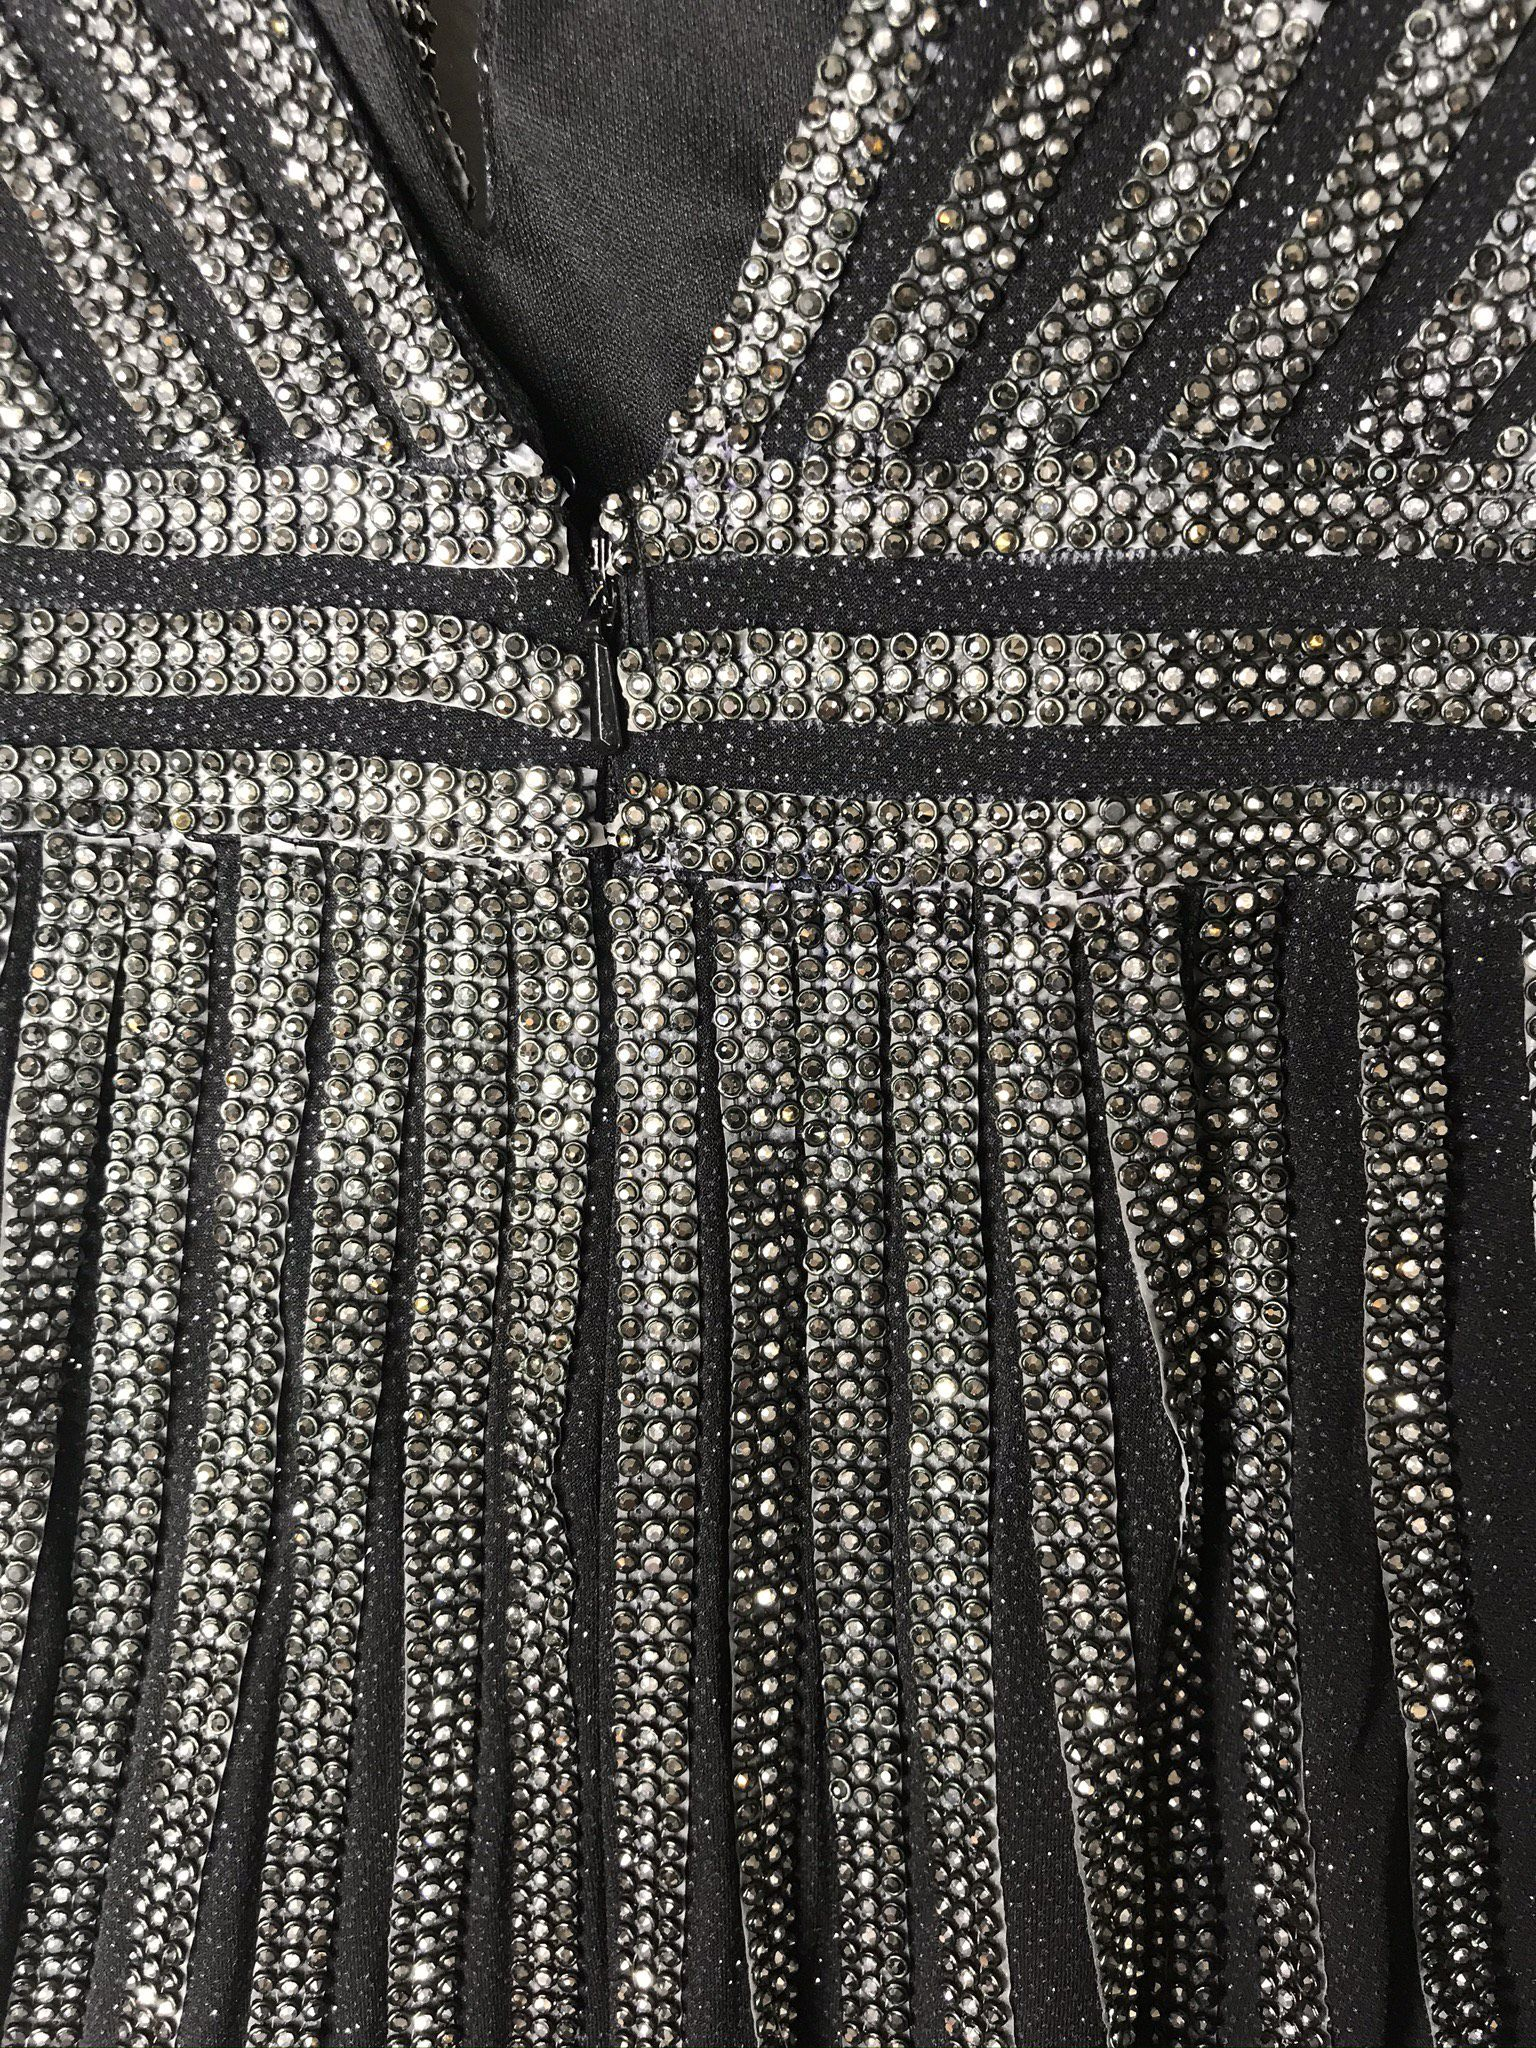 Jovani Black Size 4 Fitted Fully-beaded Cocktail Dress on Queenly